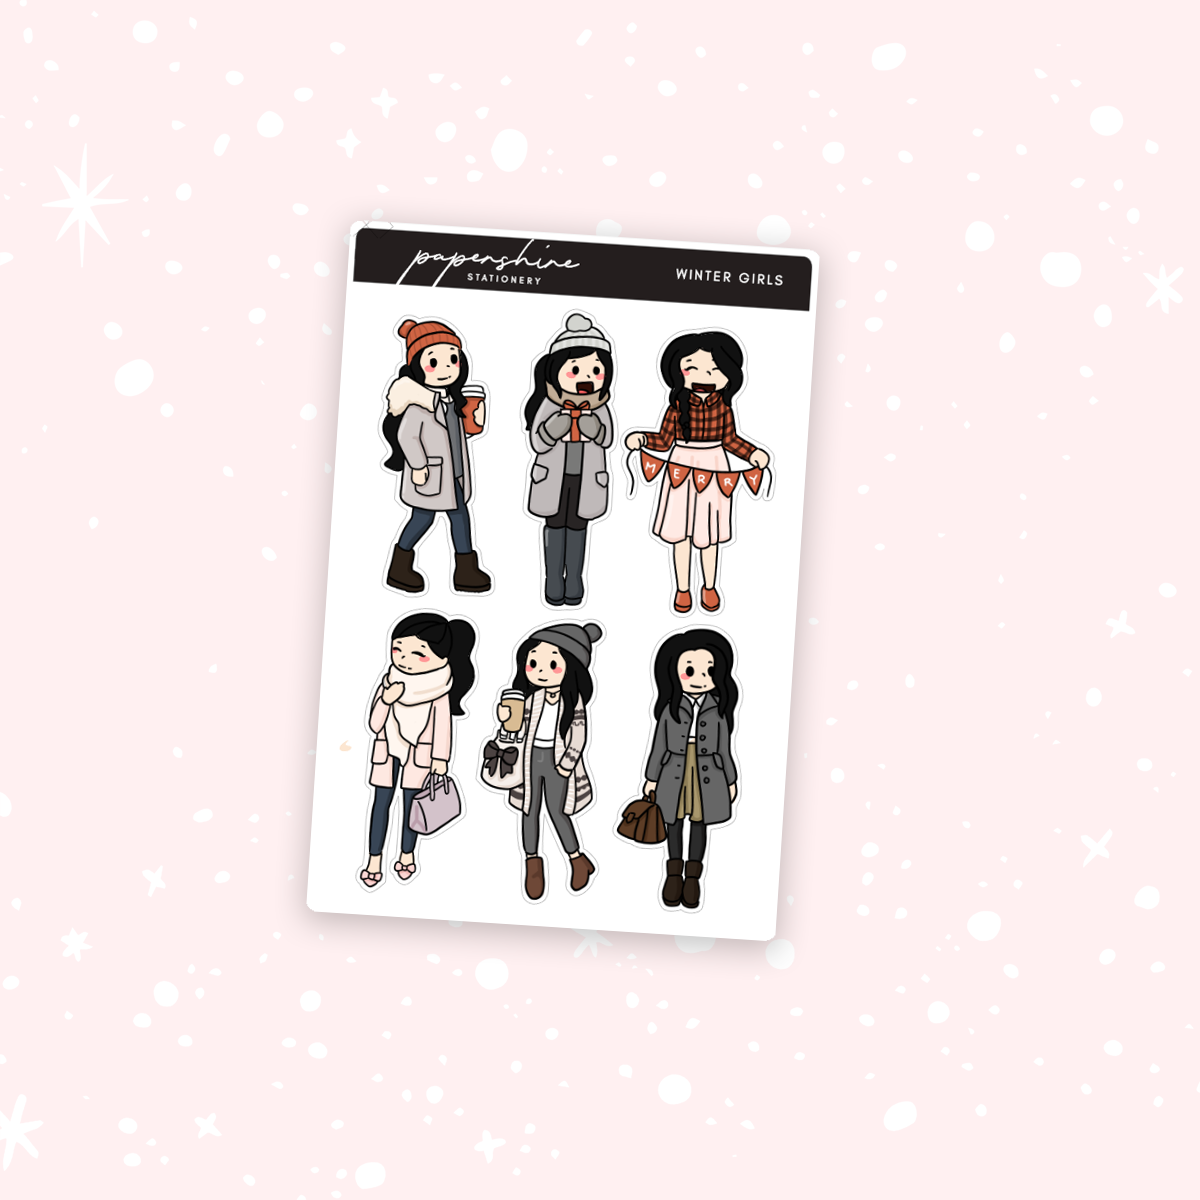 Winter Girls Nana Stickers